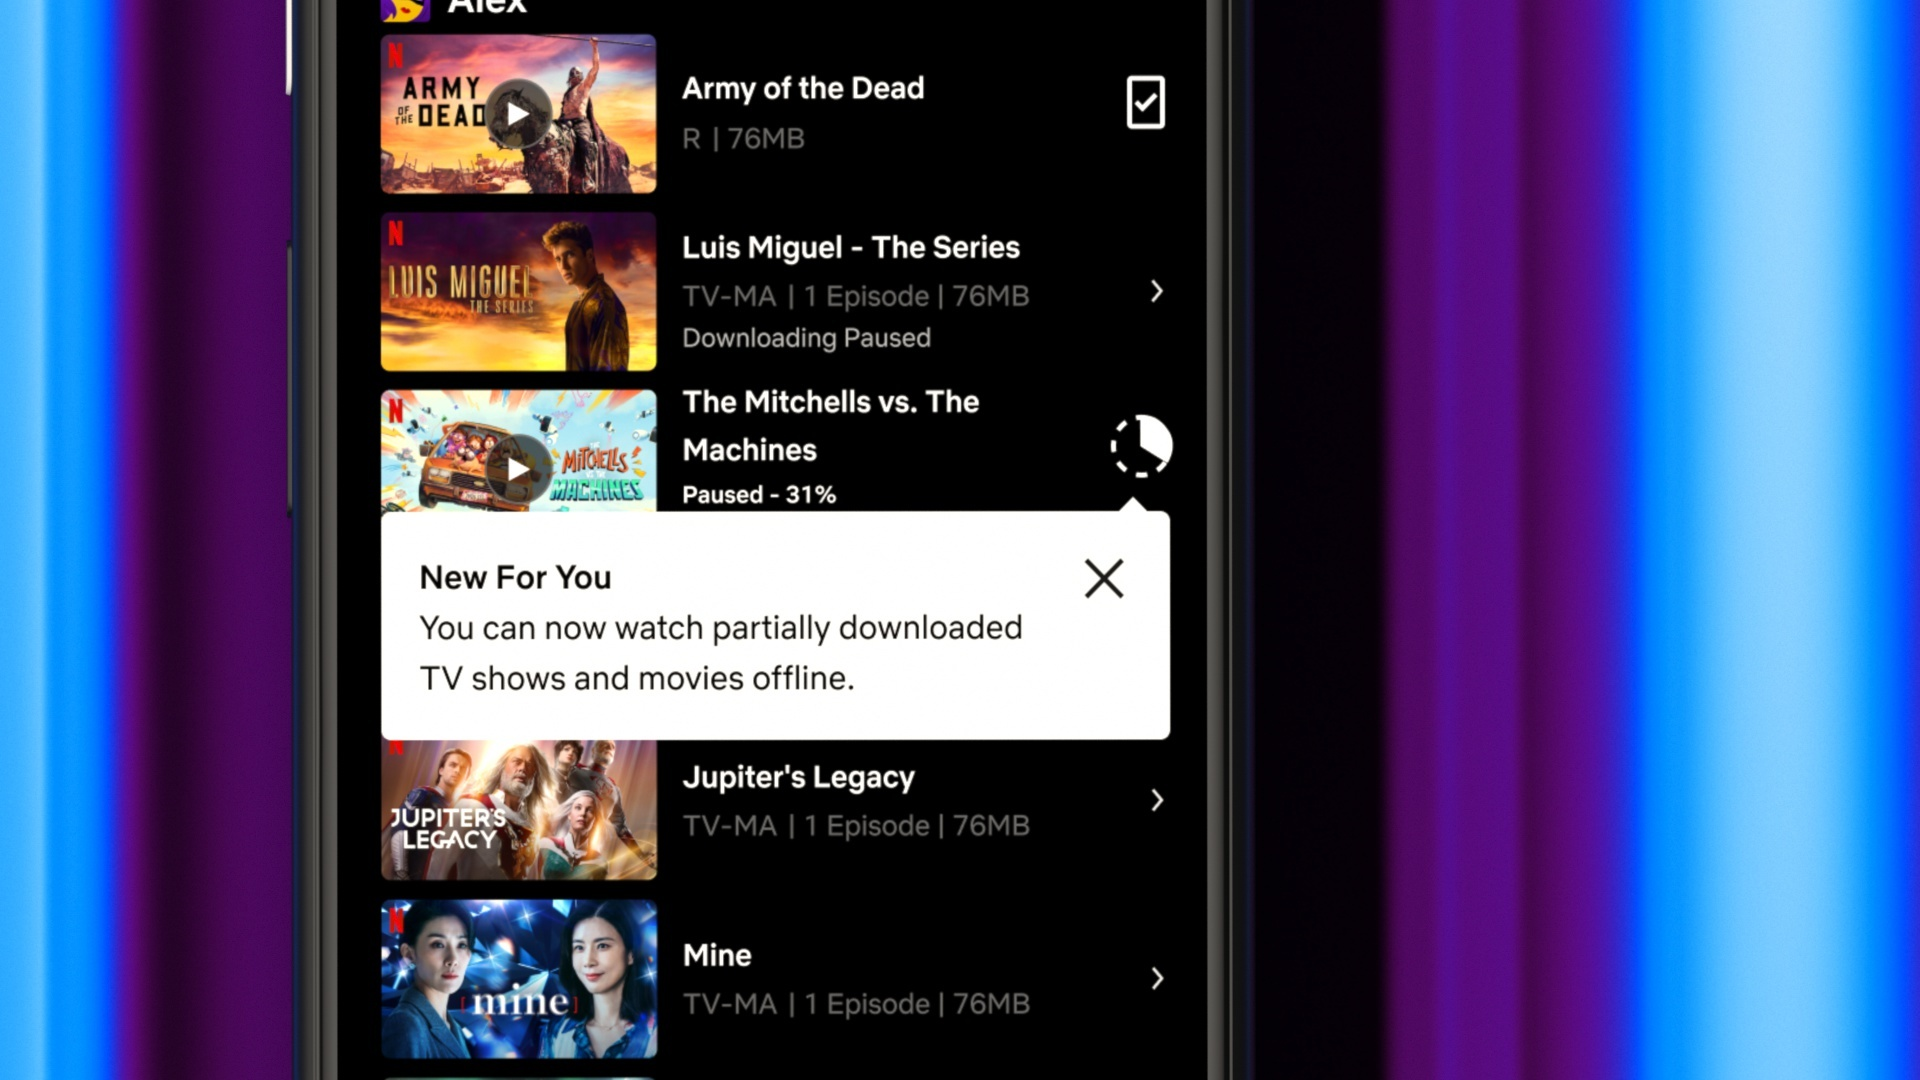 Netflix's New Feature! You Can Watch Movies/Shows While Downloading Them!